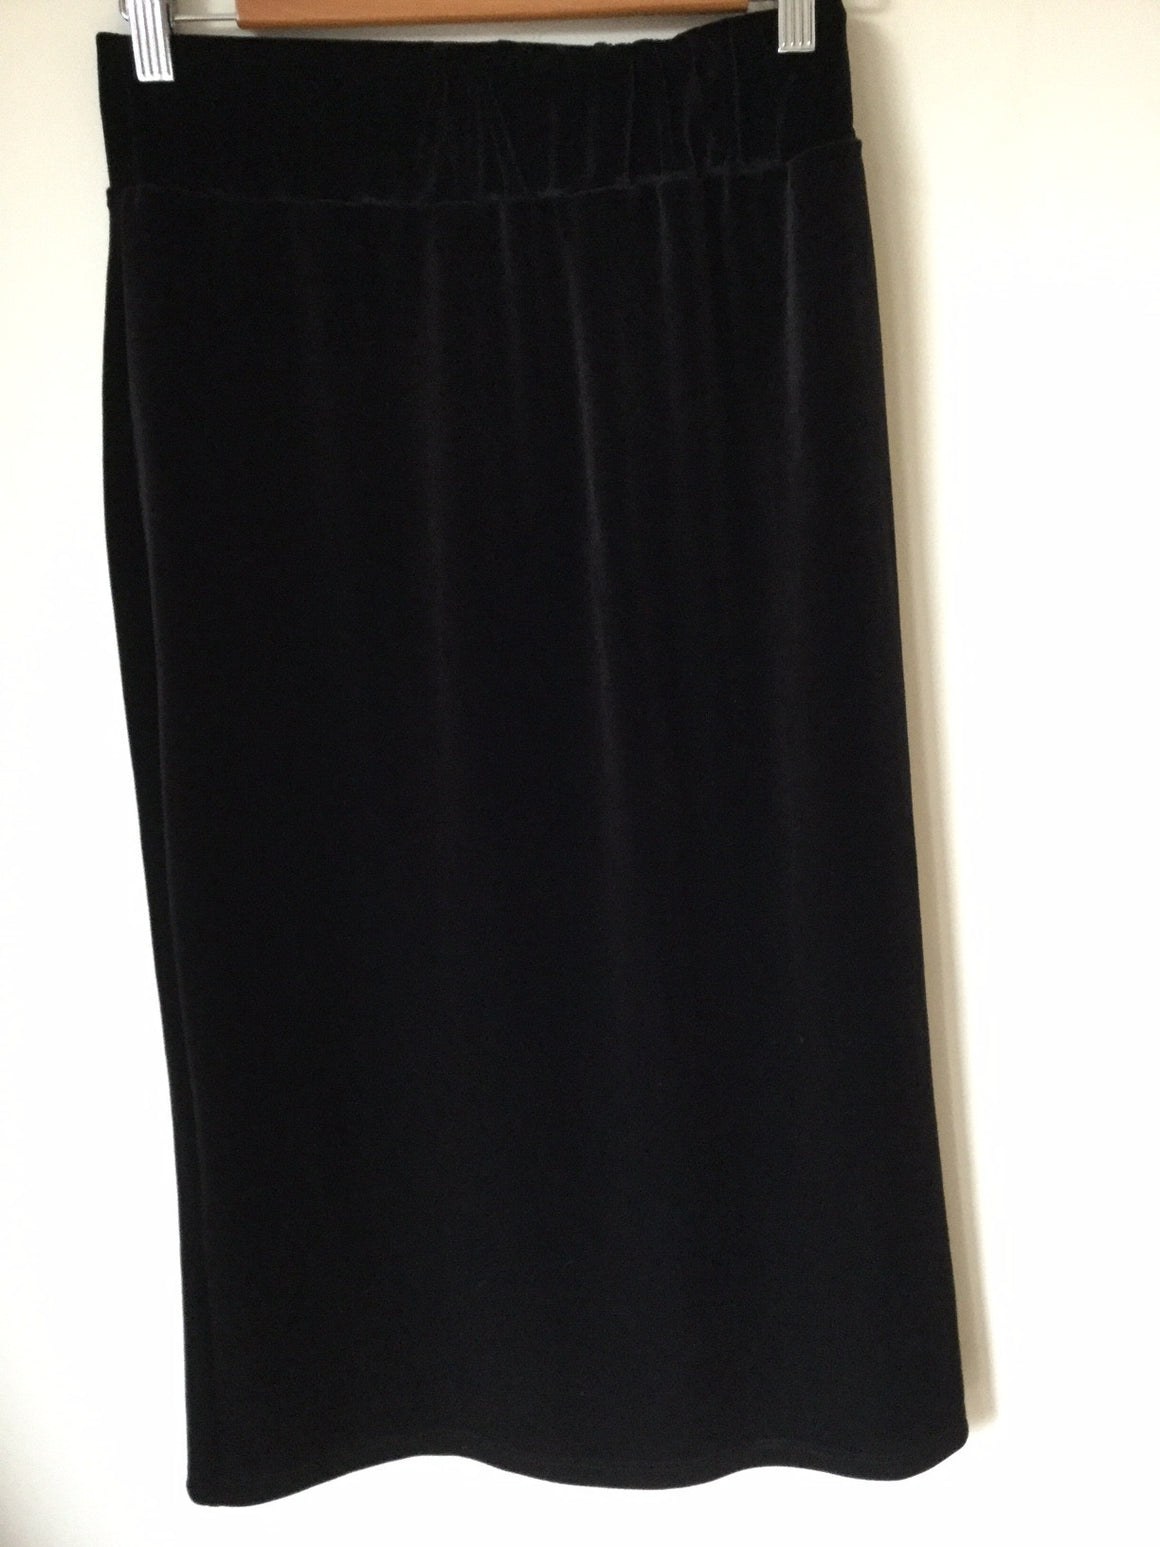 Long Slim Skirt in Velour - ali and edi - 1